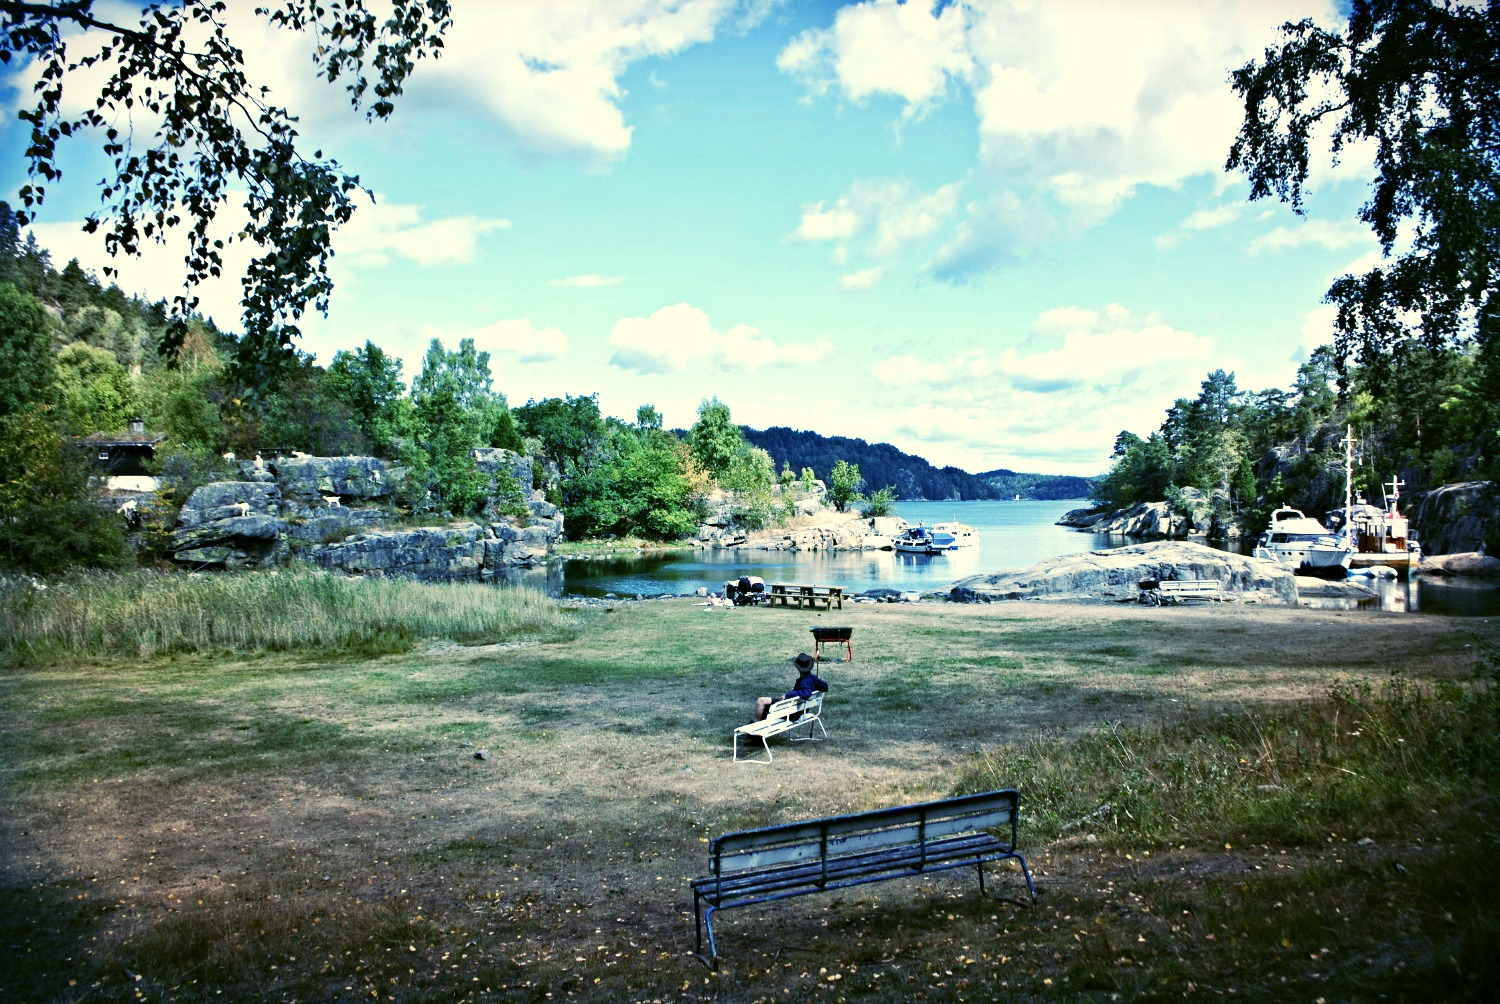 The Bay at Håøya